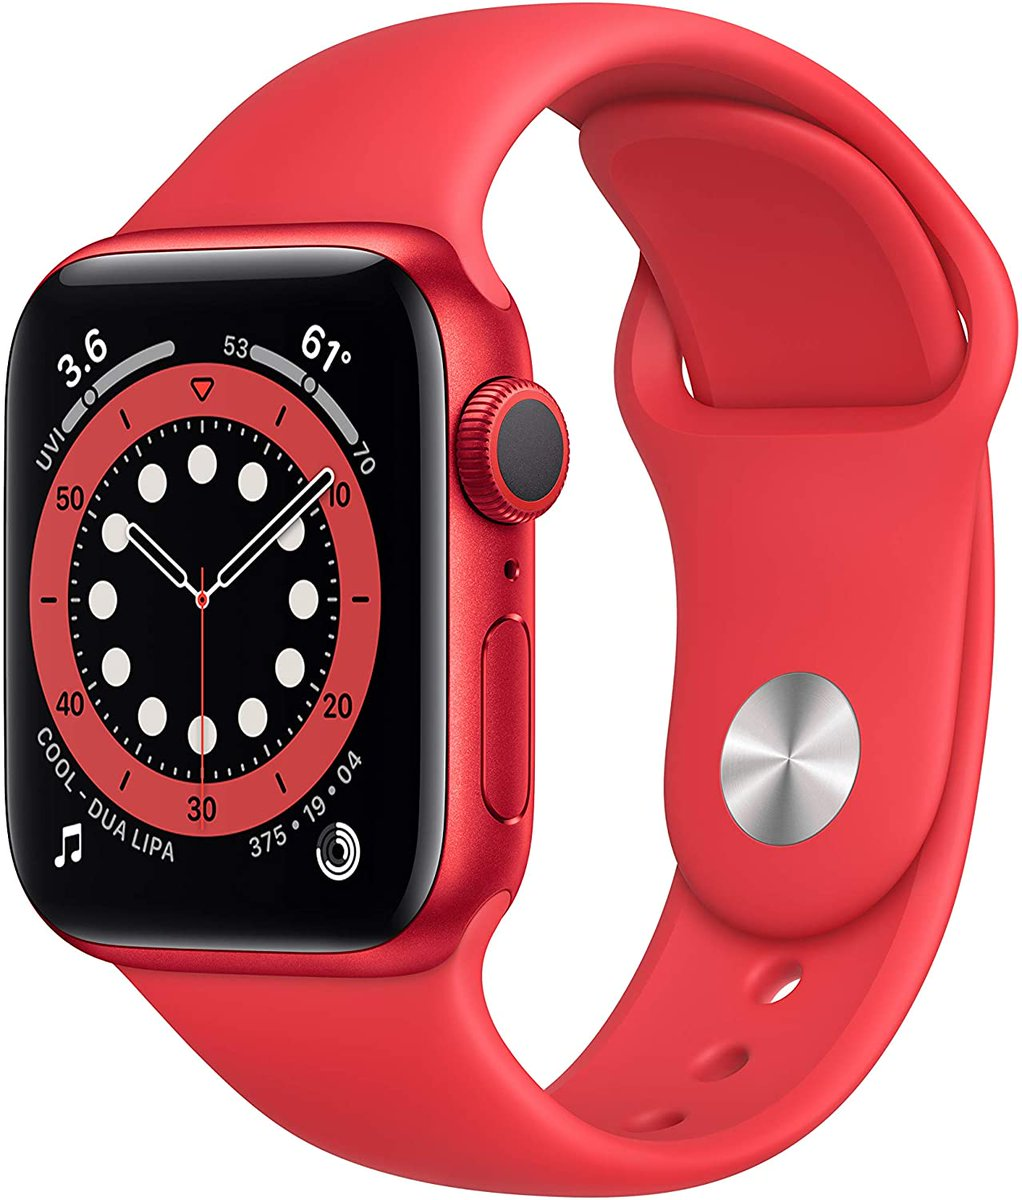 STEAL!  Get a NEW Apple Watch for as low as $169!!  38mm; https://t.co/X4RuU1ZUQa 42mm for $199; https://t.co/RRwkYHiGVB  Series 6, 40mm, $339; https://t.co/V0o1EdCQaS https://t.co/QpAKYvcqWK